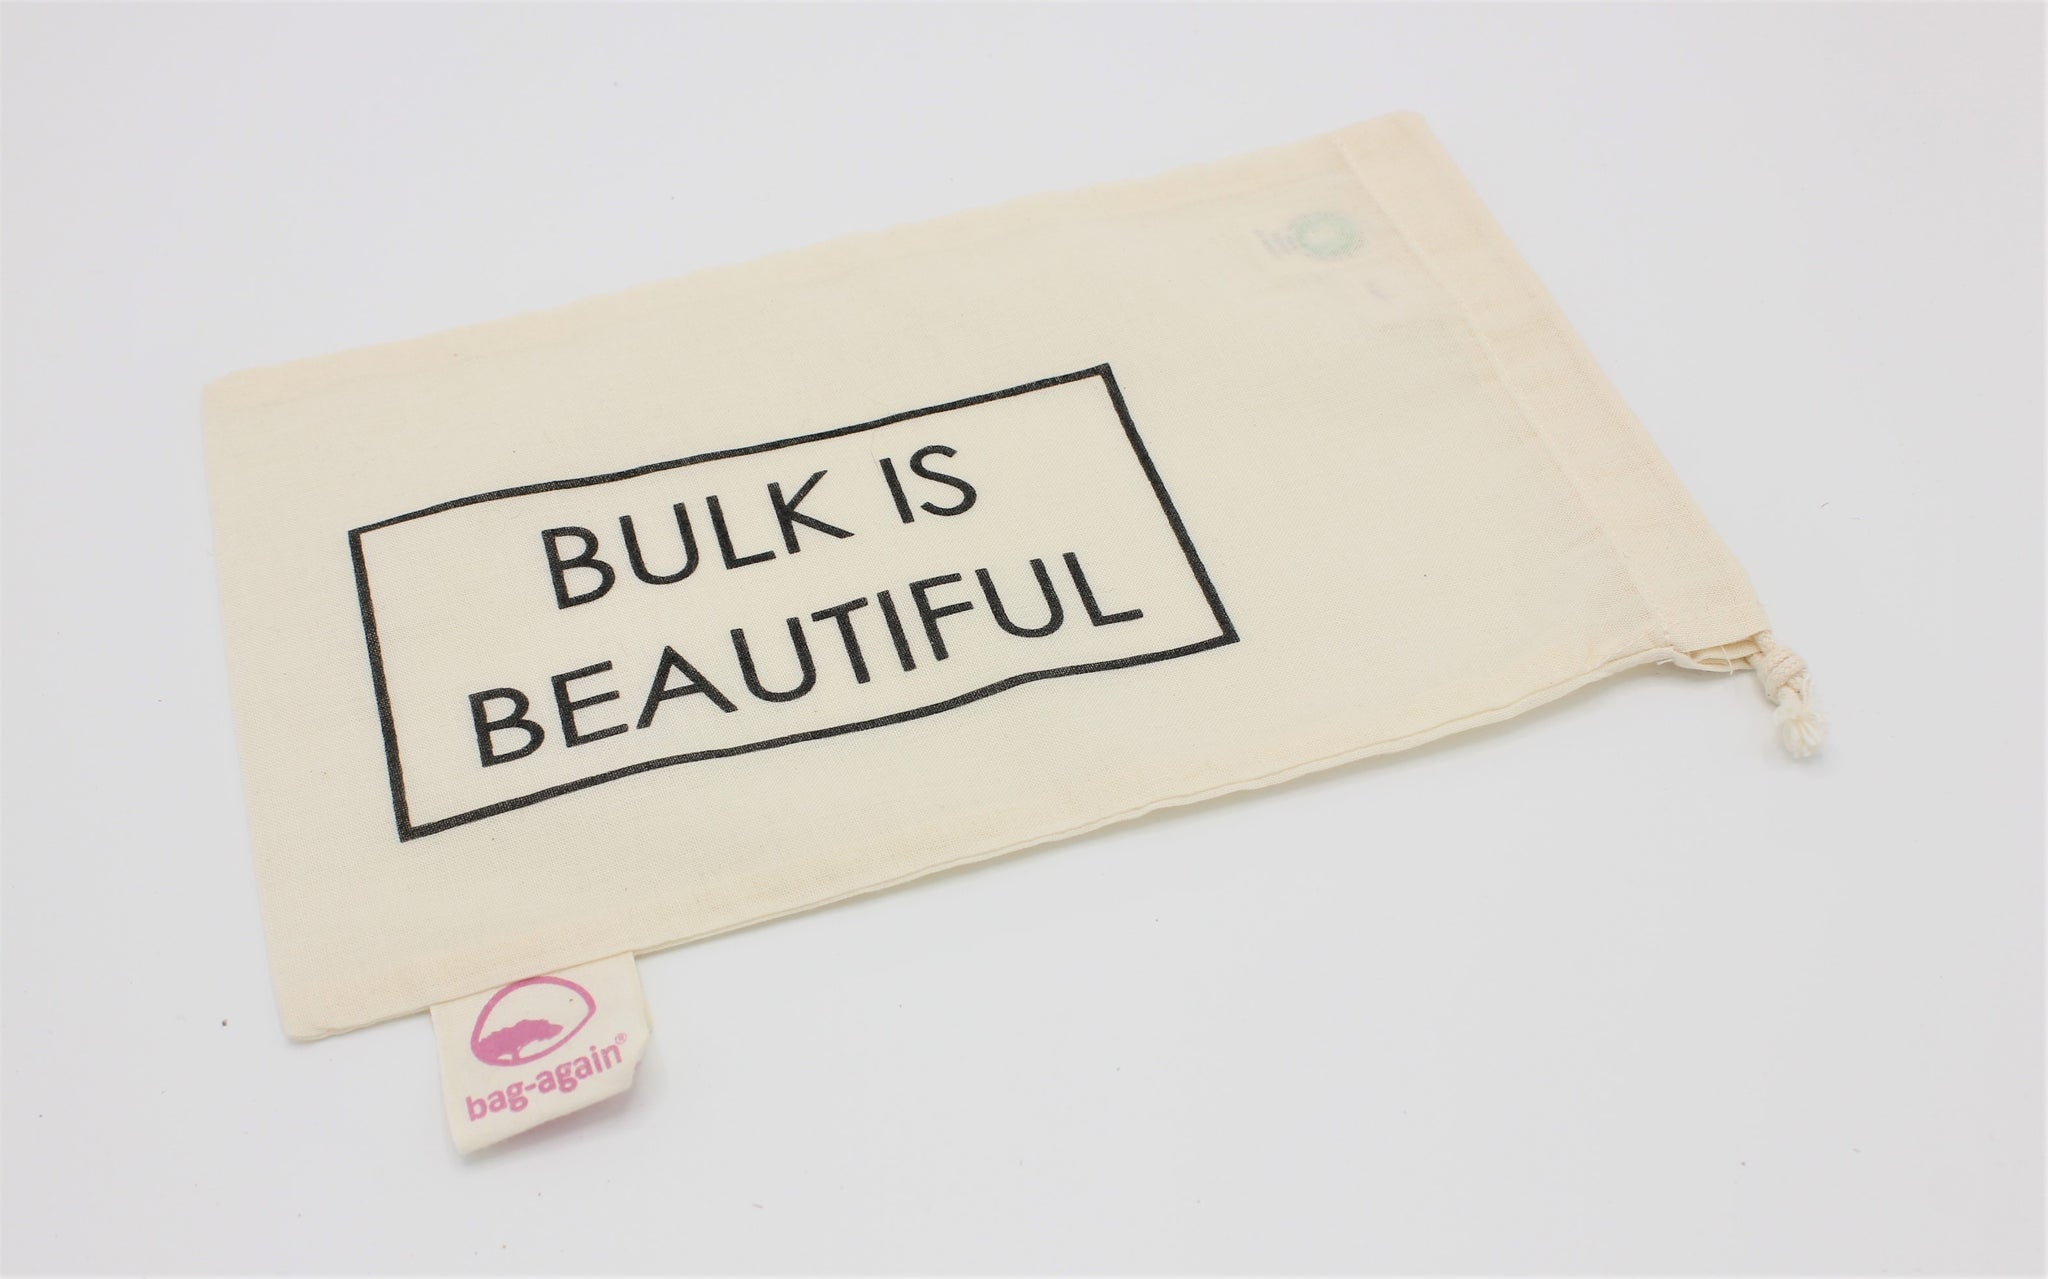 Bukzakje bulk is beautiful (15x25 cm)